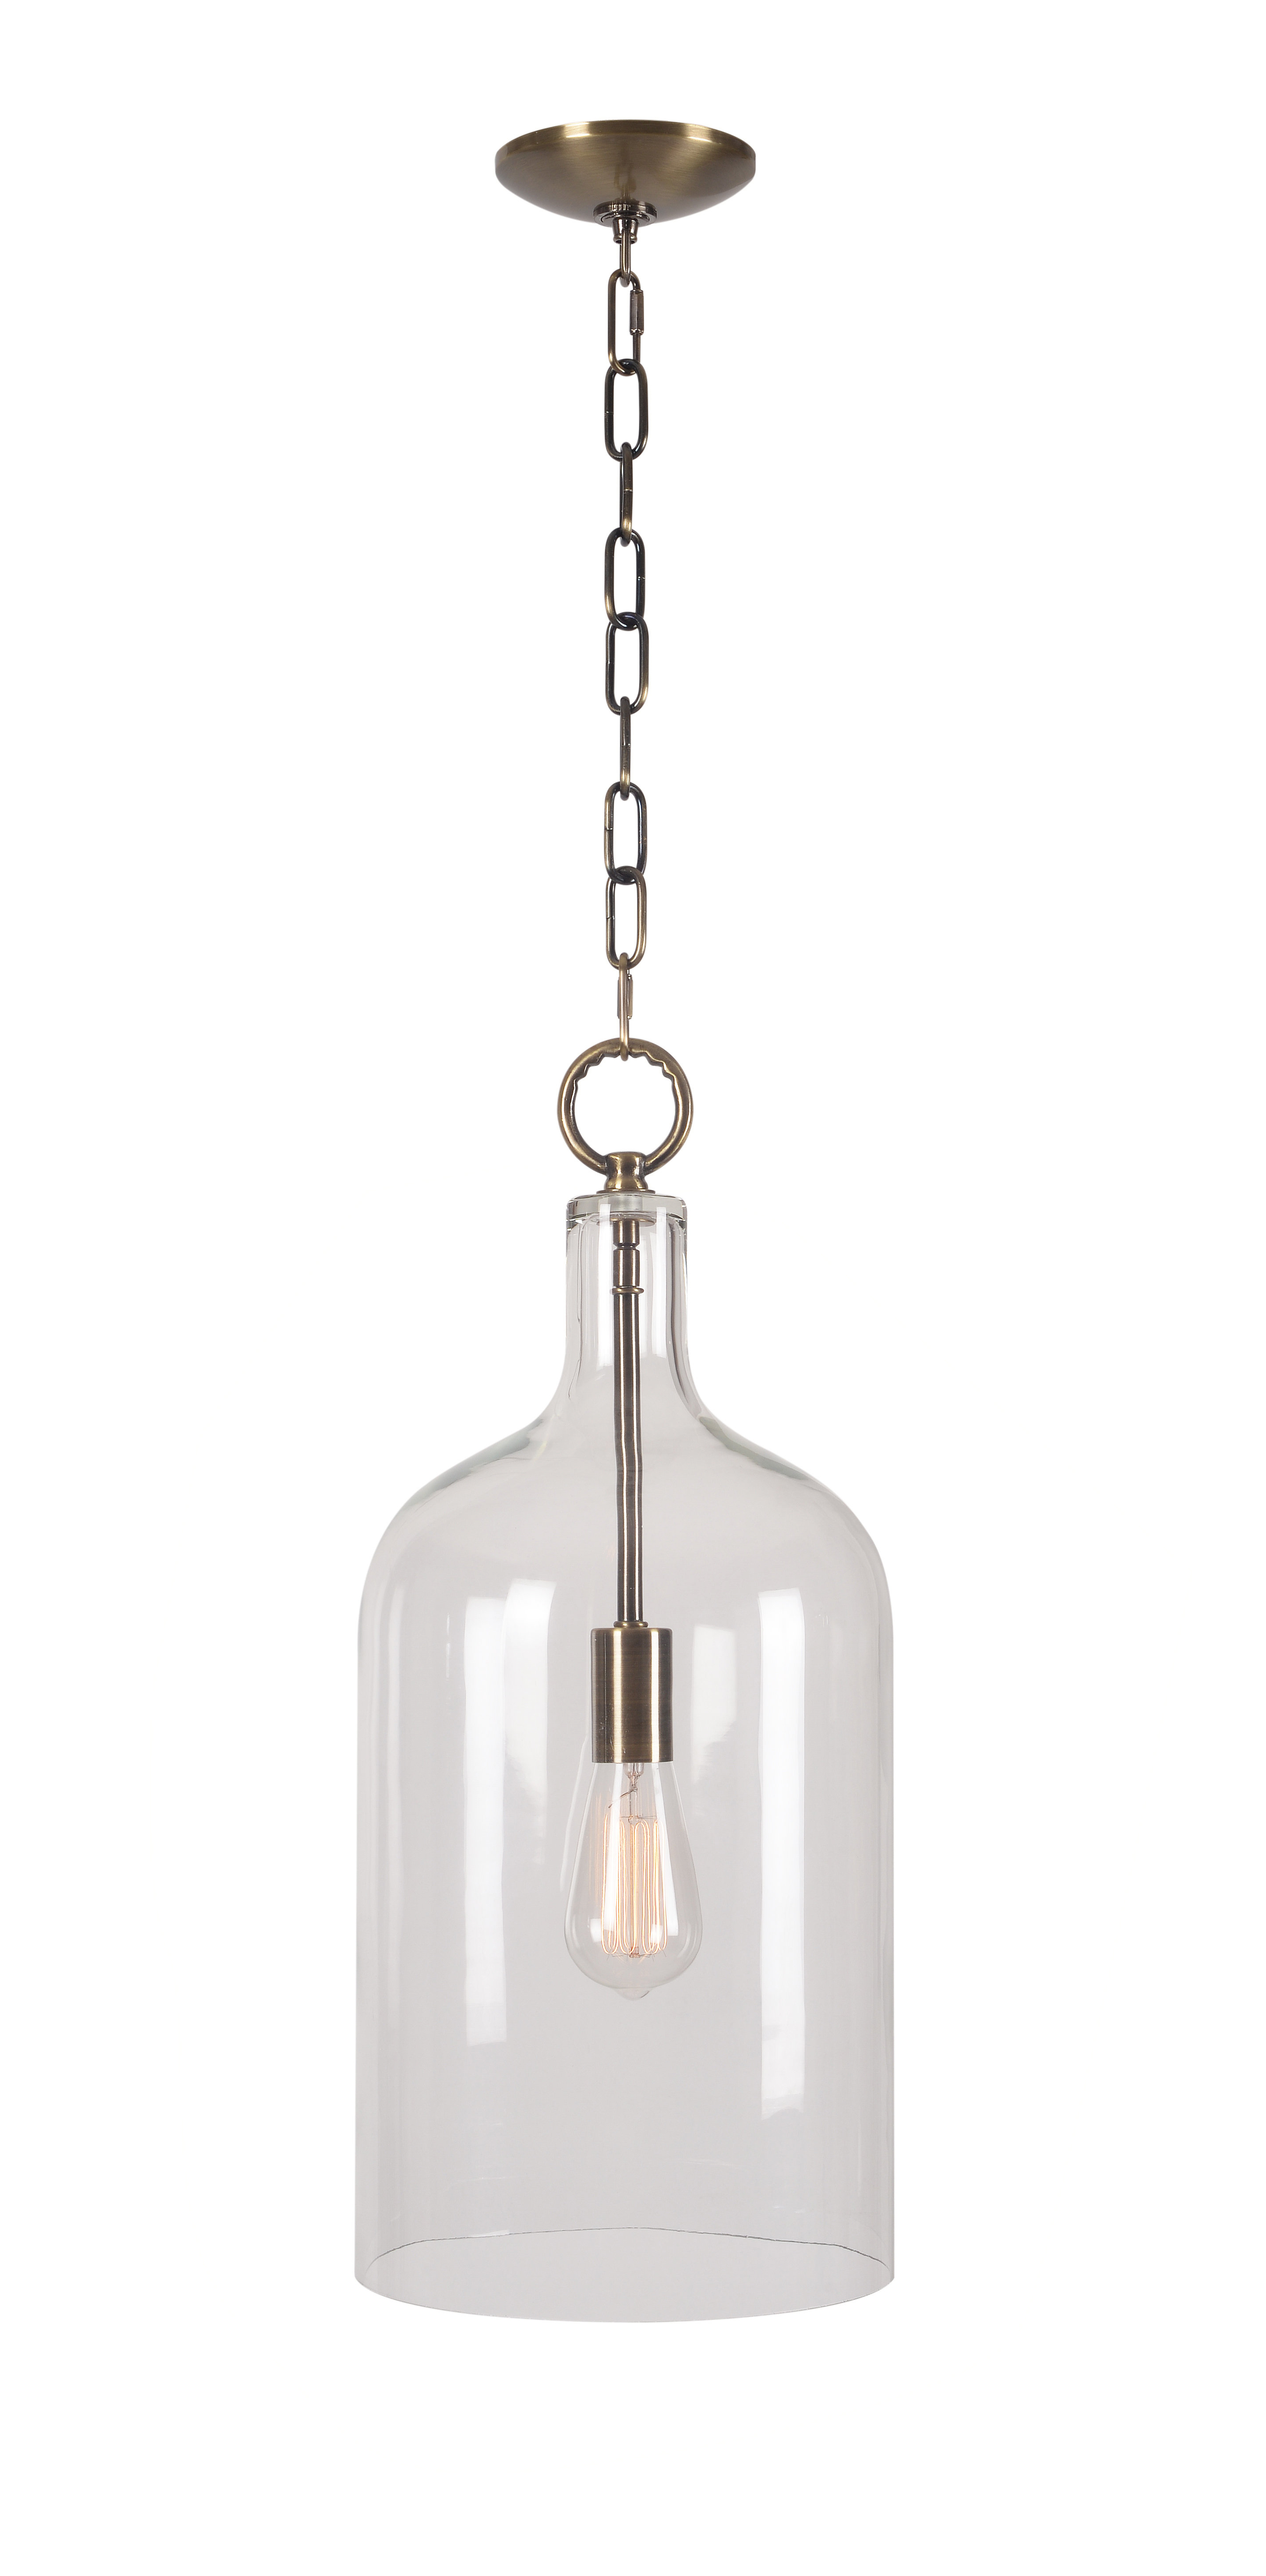 Clematite 1 Light Single Jar Pendant Intended For Well Known Nolan 1 Light Lantern Chandeliers (View 21 of 25)